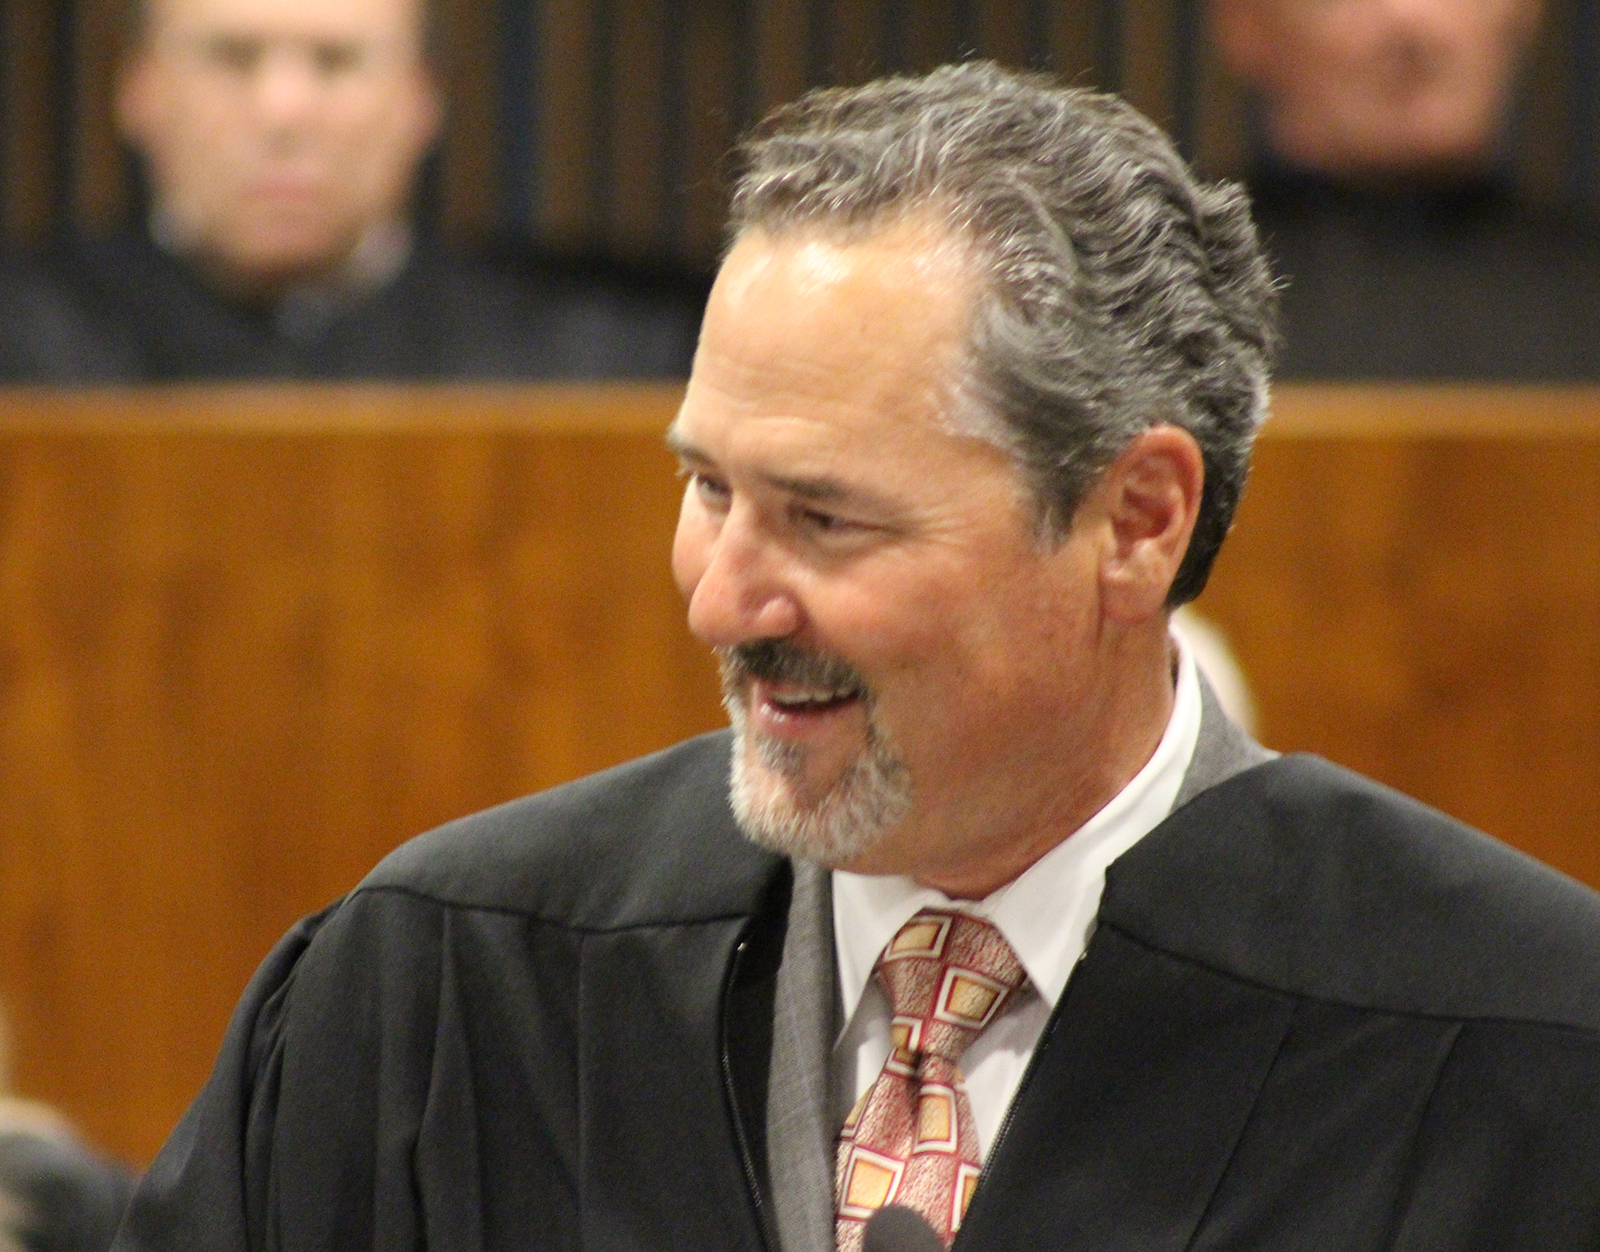 Judge Grant A. Forsberg smiles as he delivers remarks following his oath of office in the legisla-tive chambers of the Omaha-Douglas Civic Center on Friday, Aug. 2, 2019. (Photo by Scott Stewart)